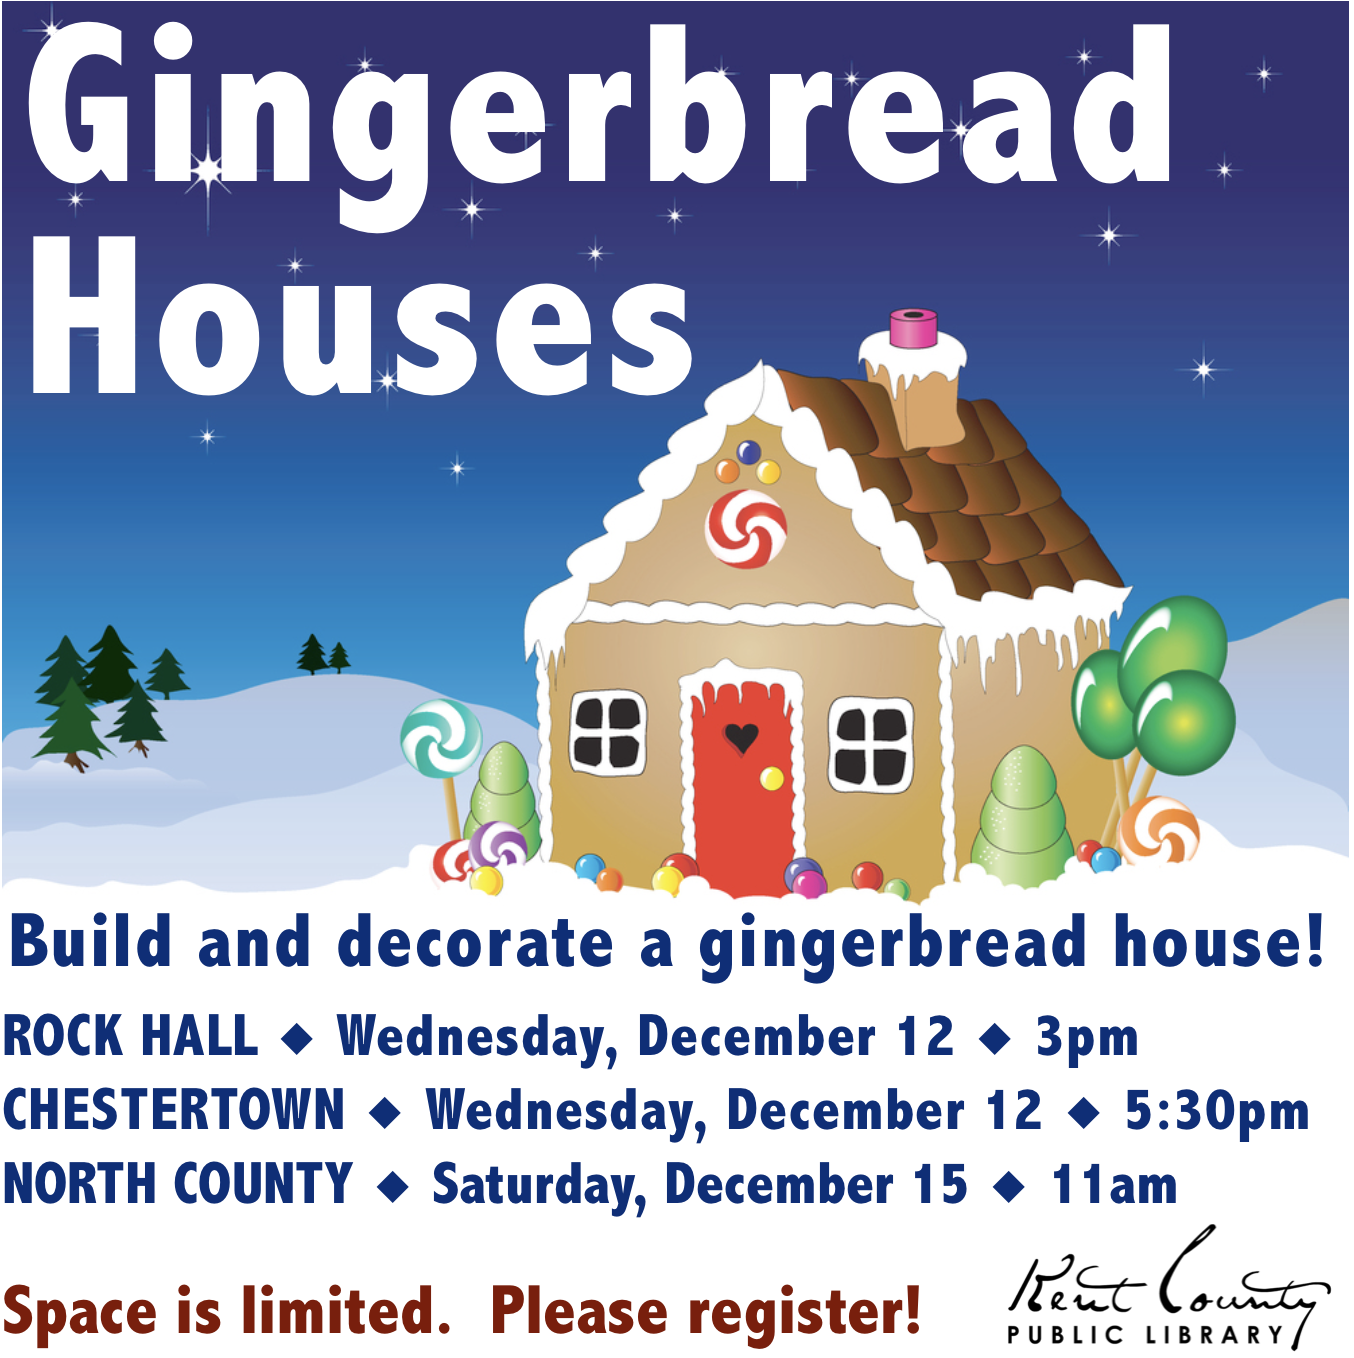 Gingerbread Houses in Rock Hall